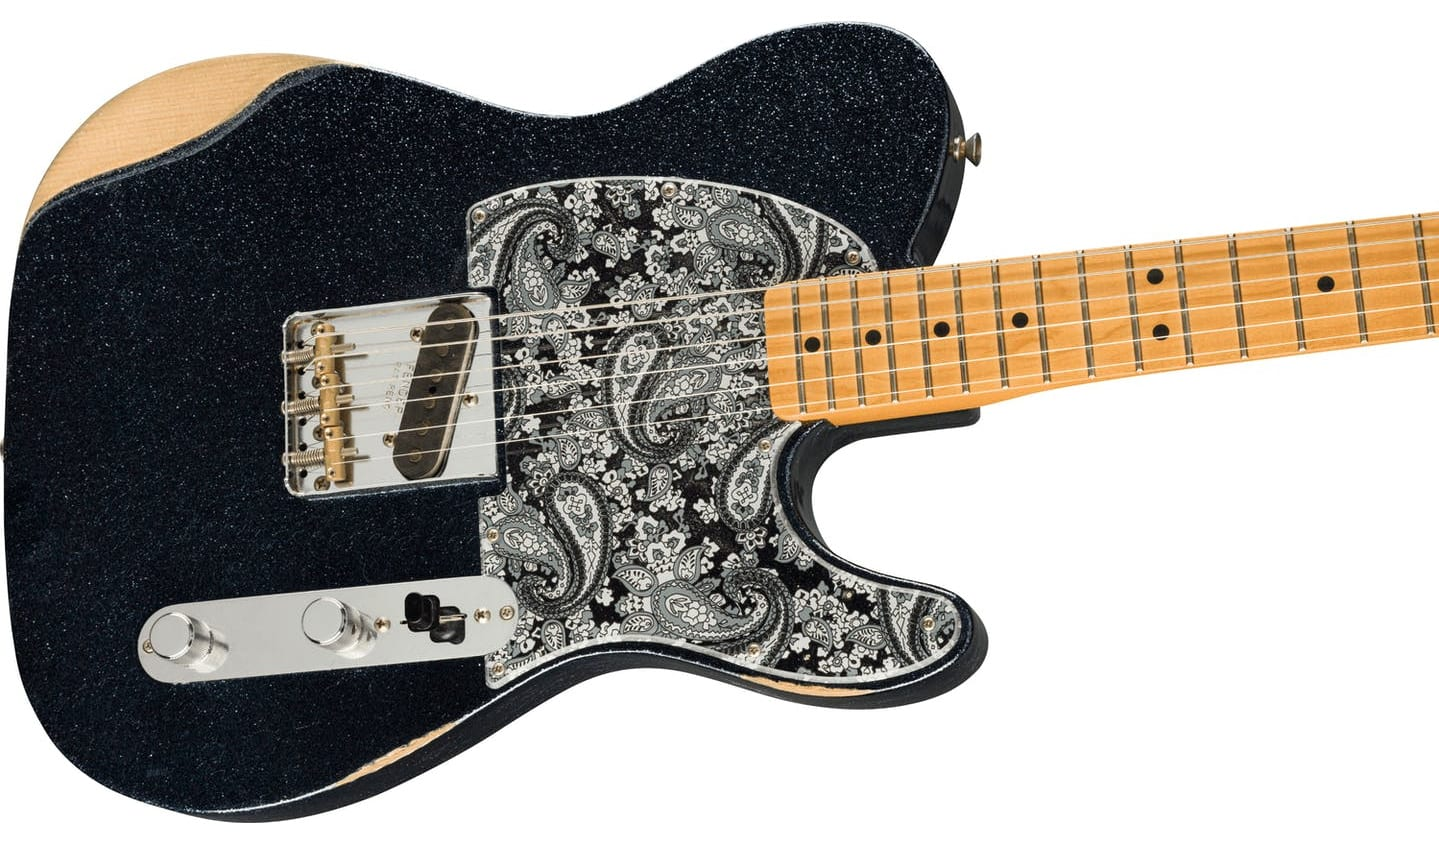 Fender Brad Paisley Esquire with a secret neck pickup